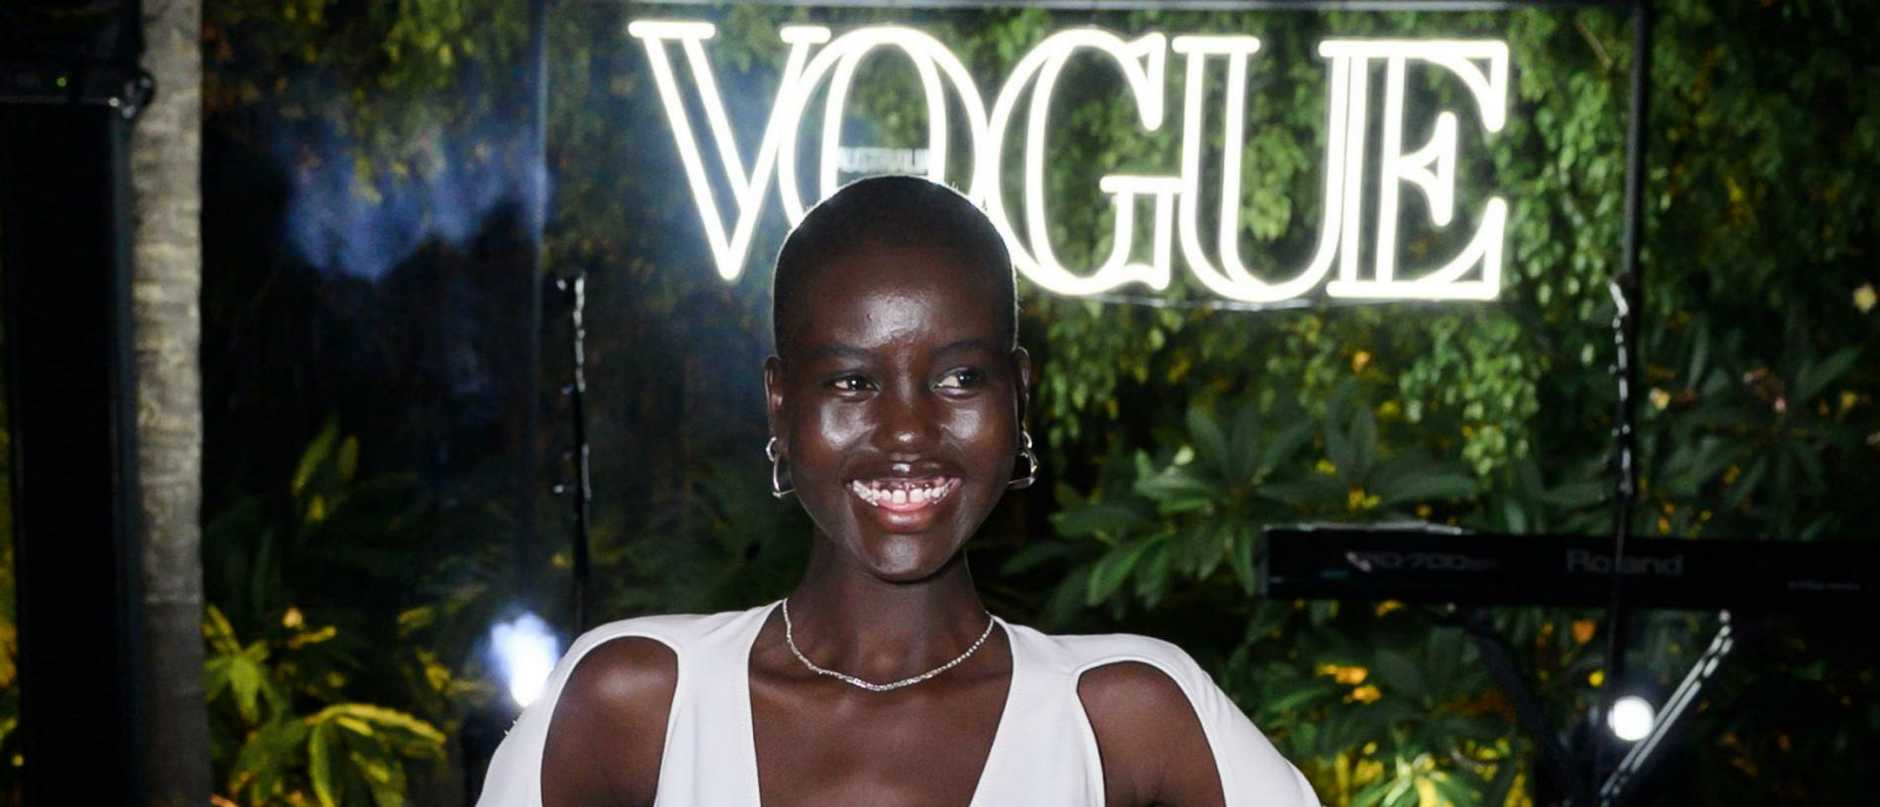 Supermodel Adut Akech, who spent the first seven years of her life in a refugee camp, says she won't back down from issues including equality and refugees.